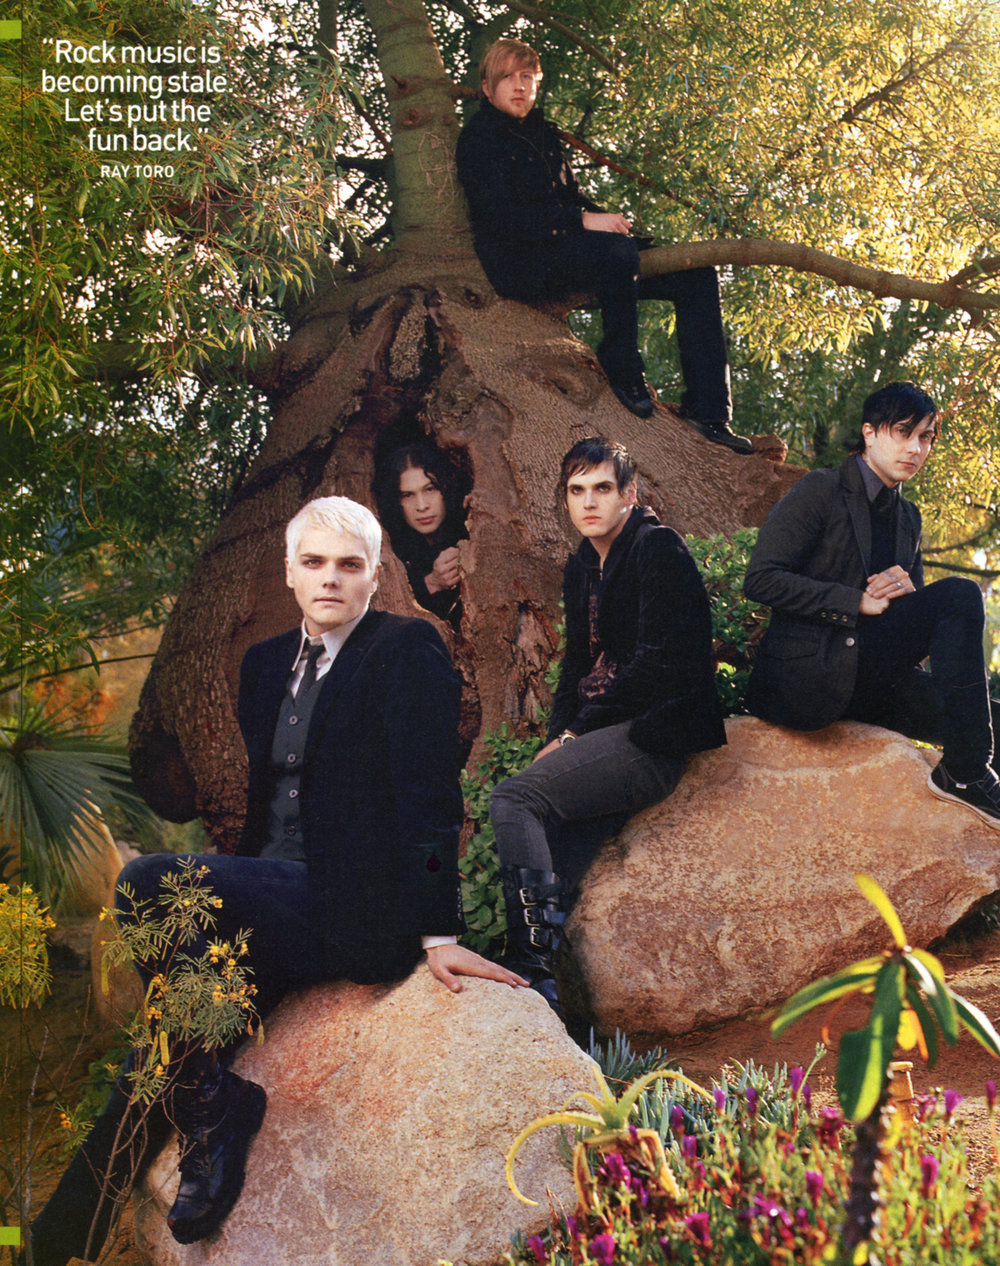 Spin Magazine Cover & Editorial - My Chemical Romance